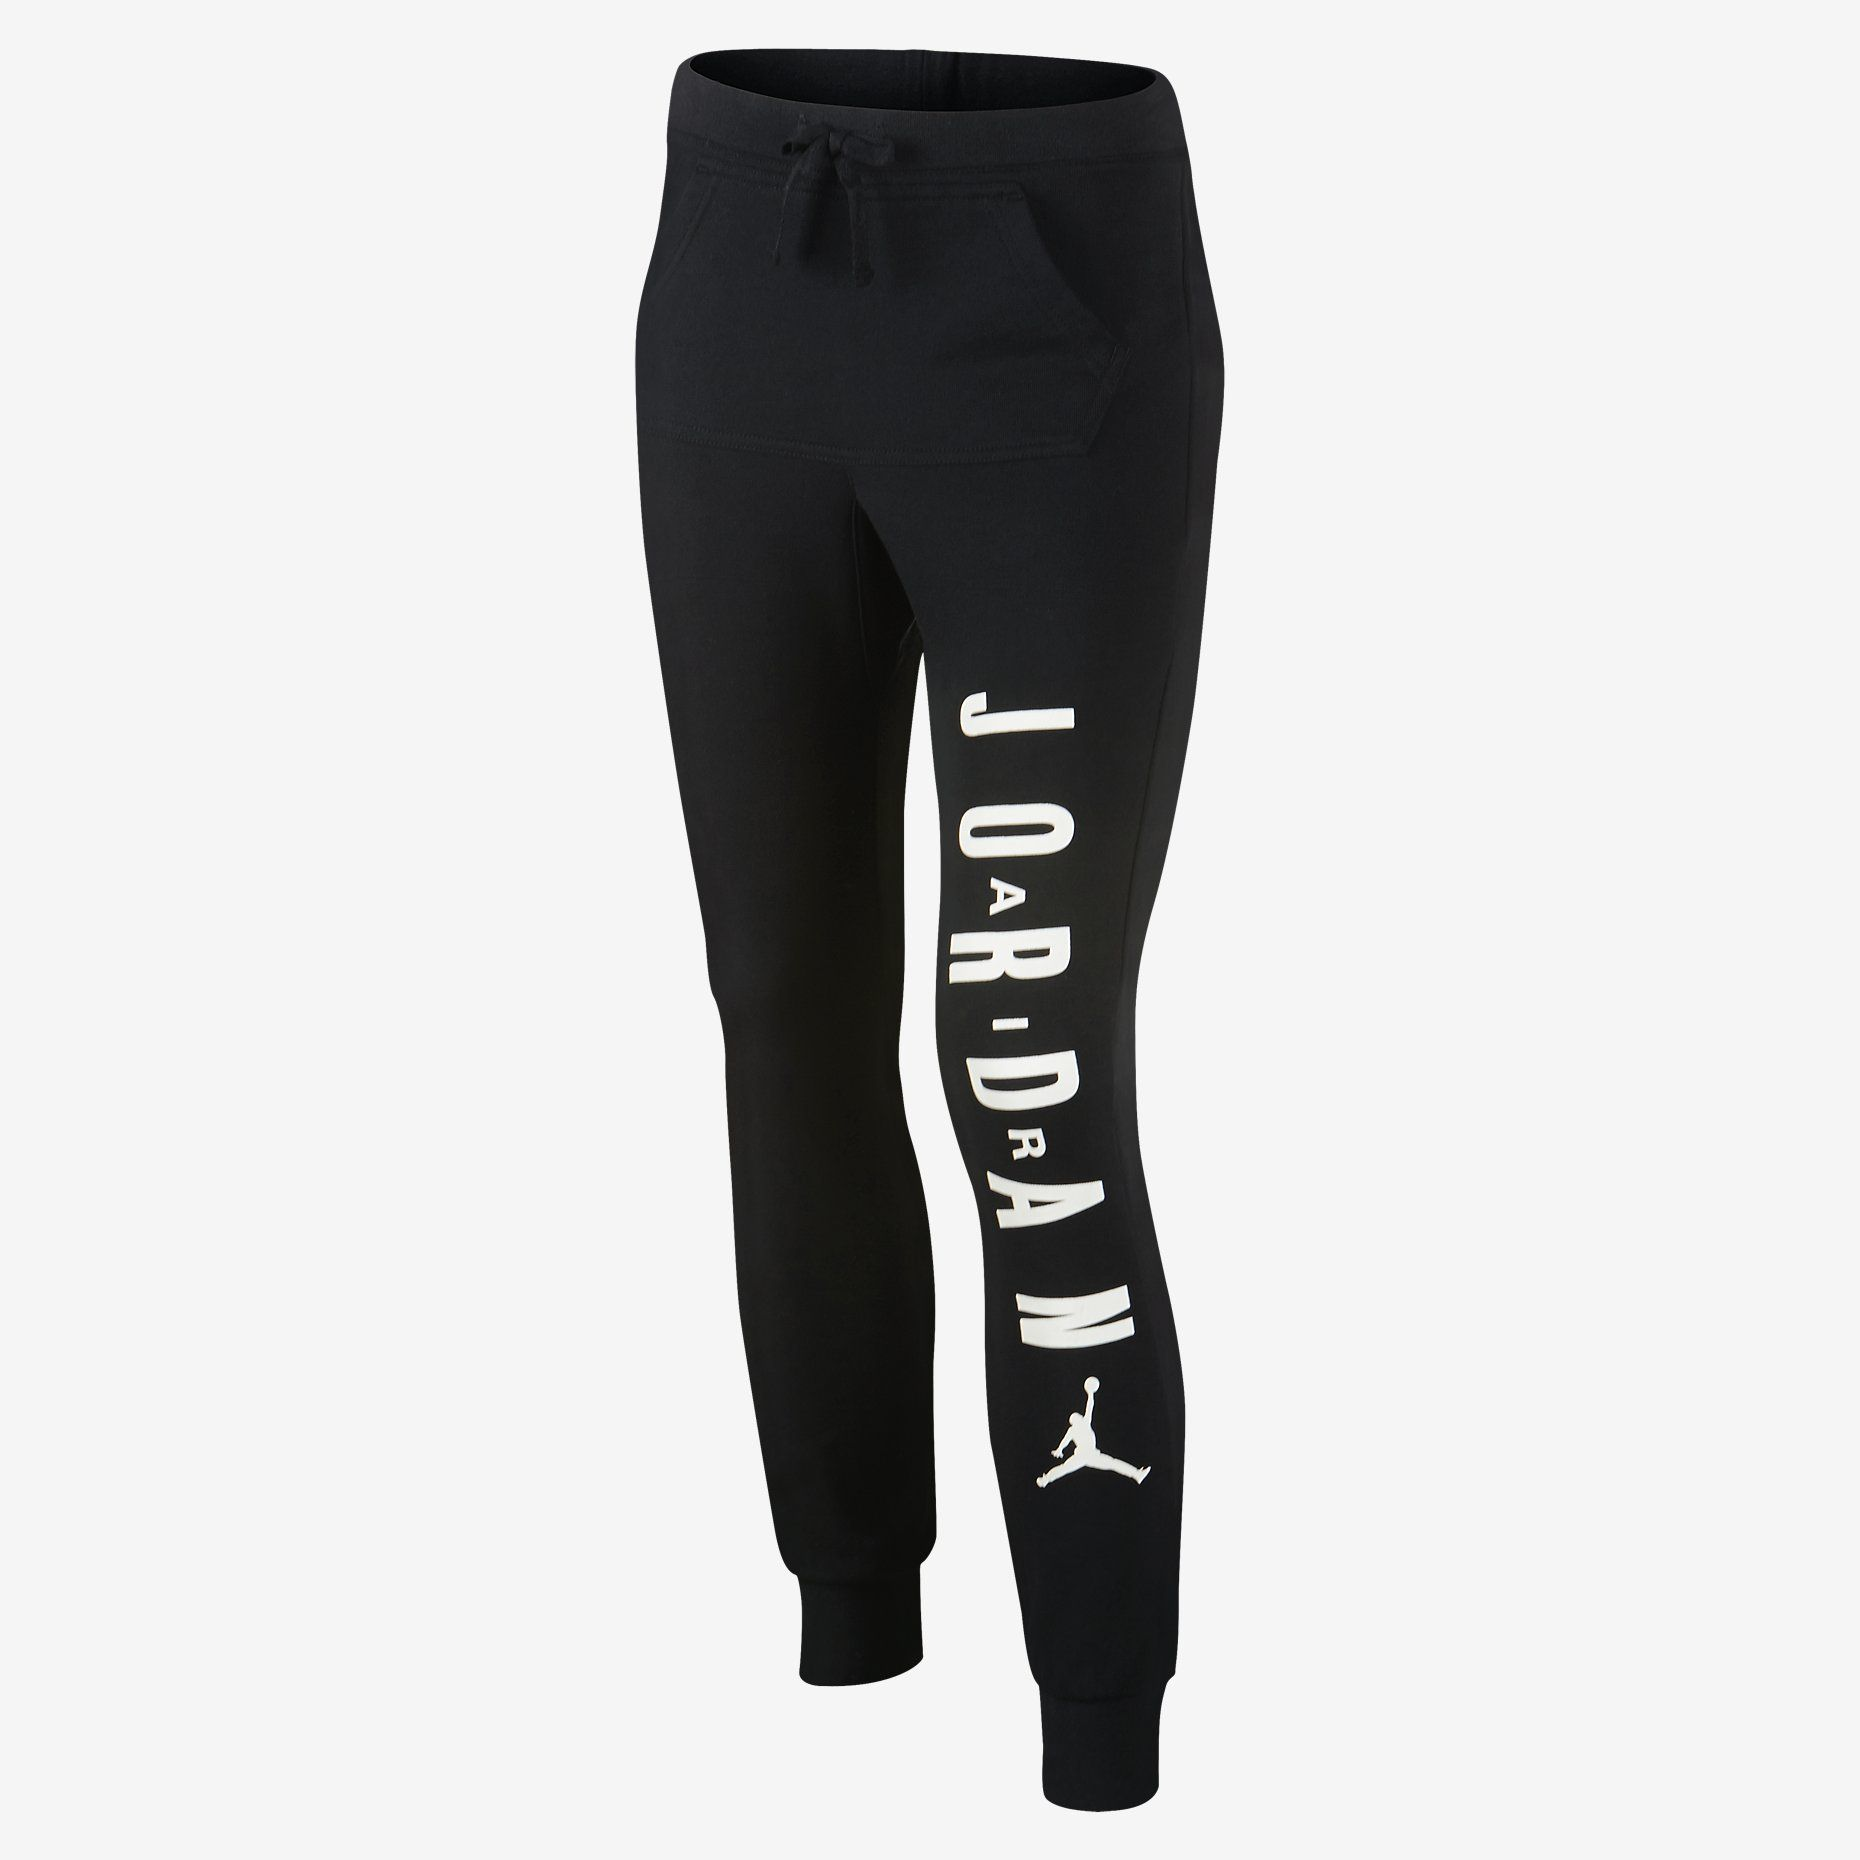 c9ccca7386c378 Jordan Too Fly To Sweat Girls  Sweatpants. Nike Store